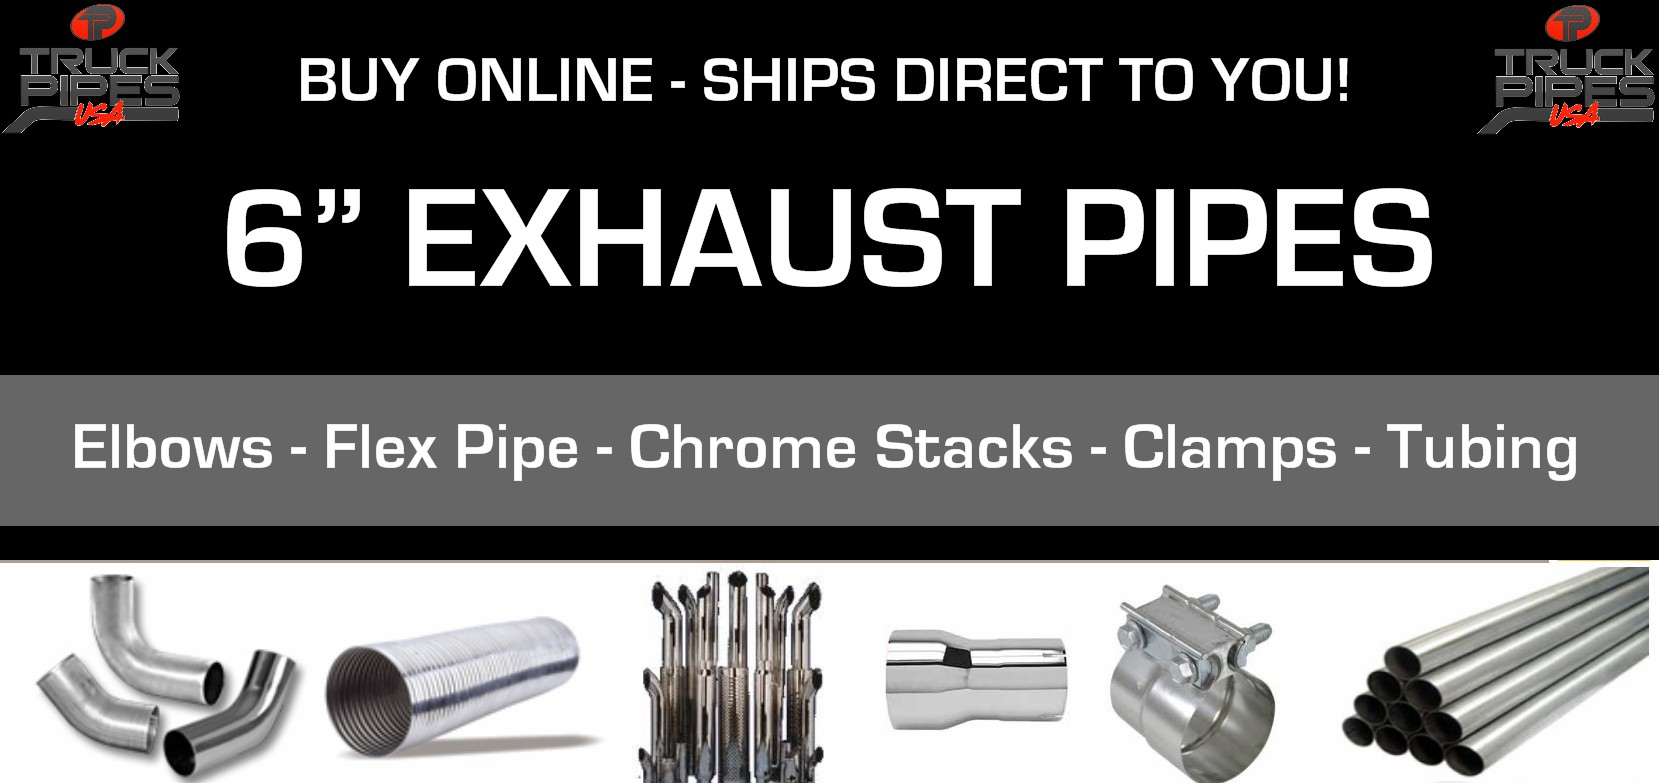 6 exhaust pipes truck exhaust 6